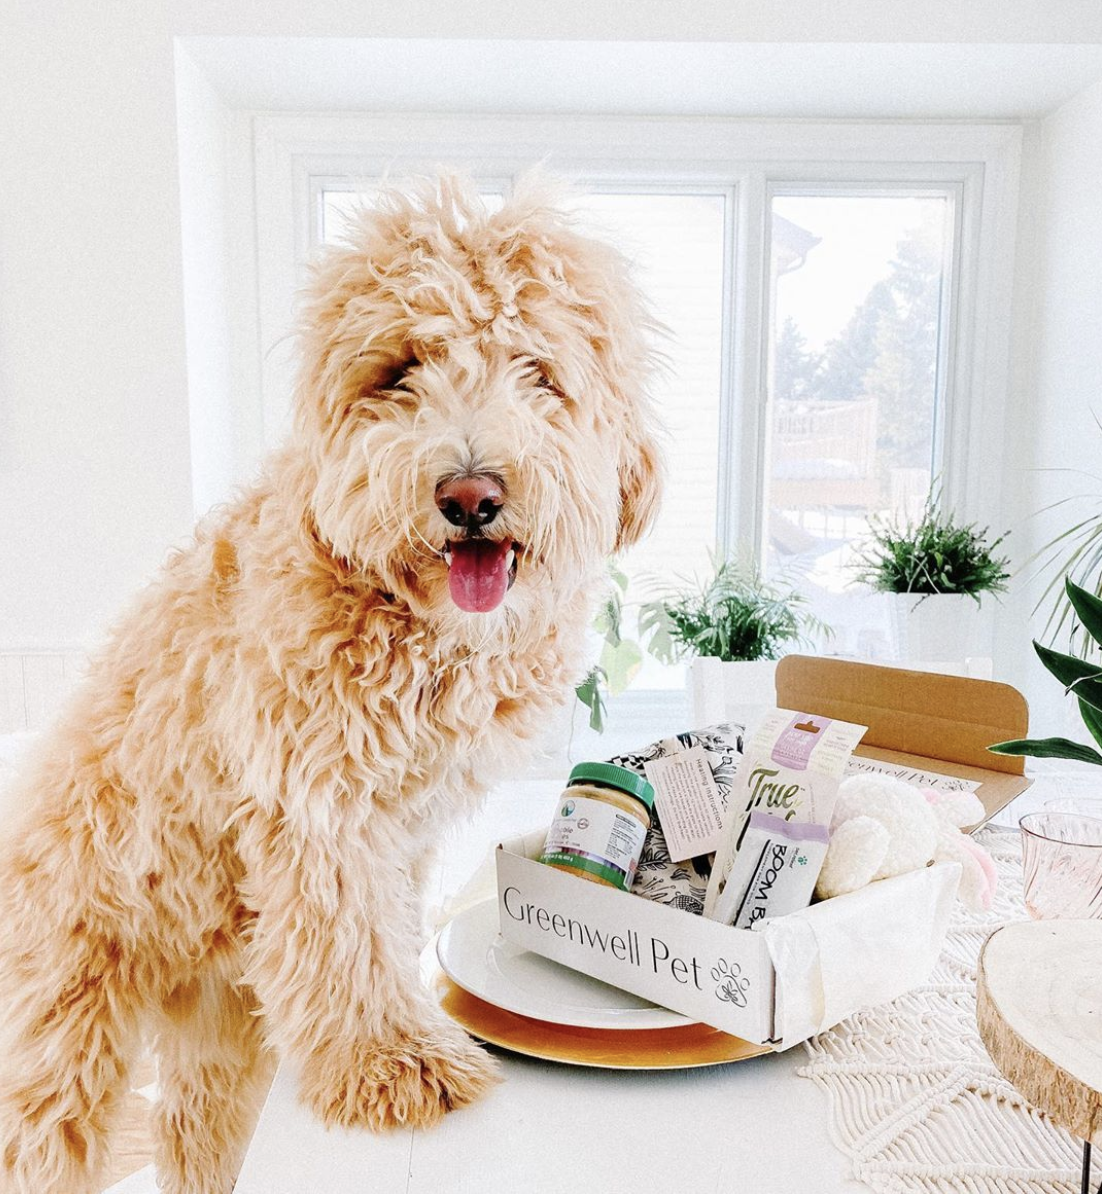 Fluffy Golden Doodle dog with its paws up on the counter next to an open Greenwell Pet CBD subscription box.